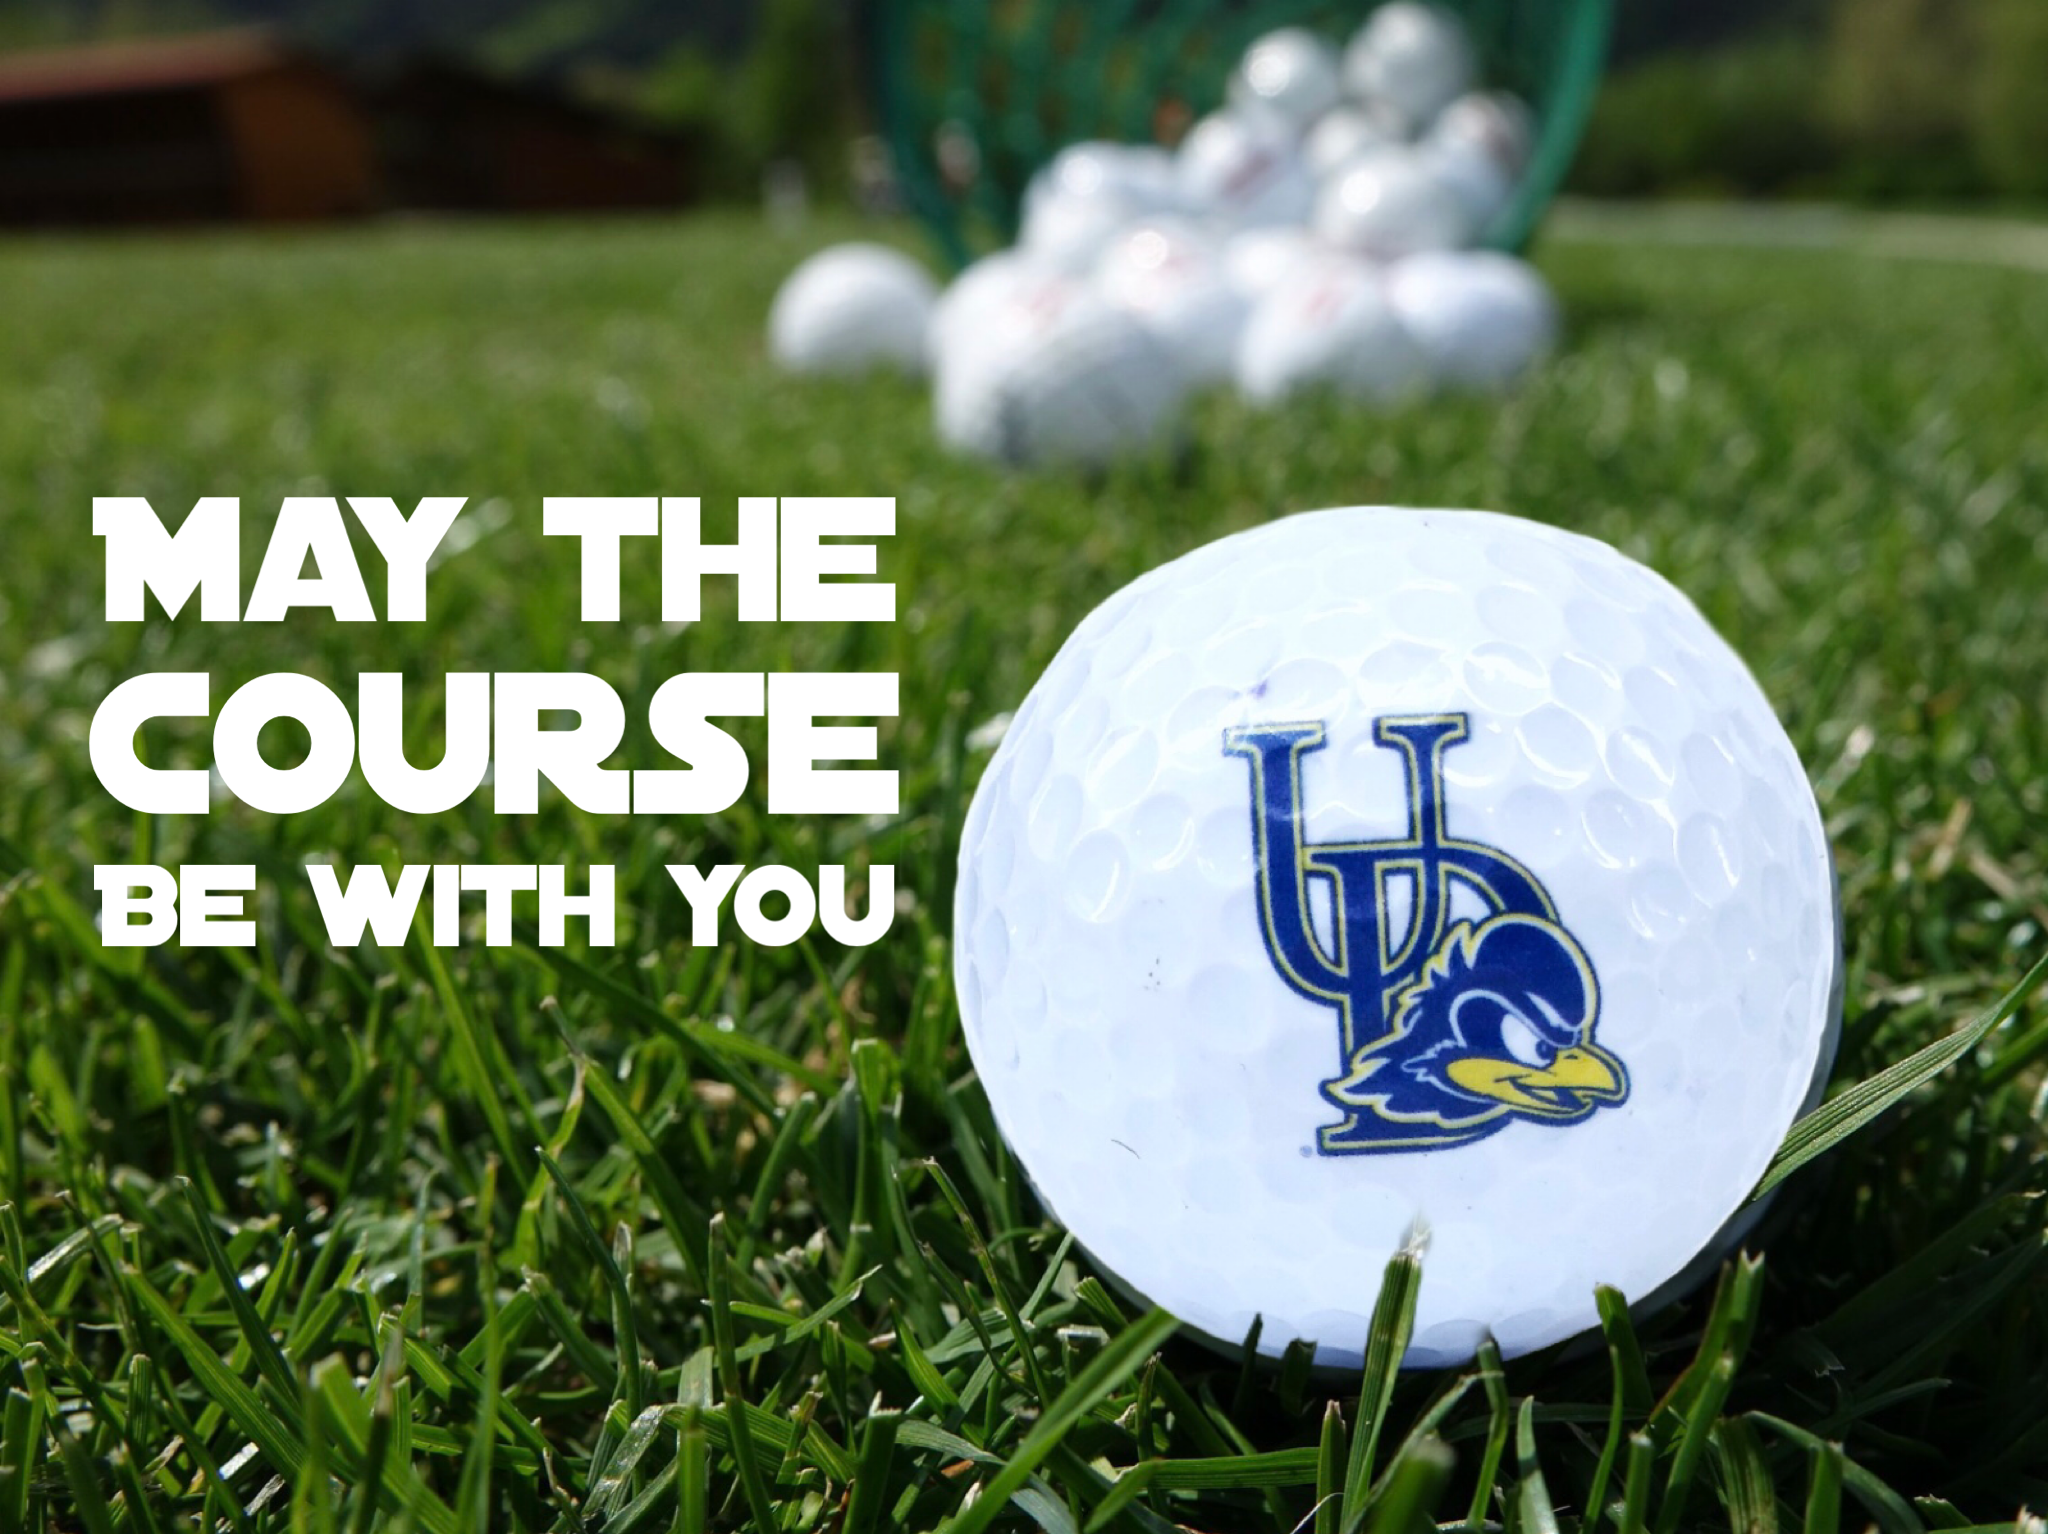 free golf and lessons when you purchase university of delaware golf